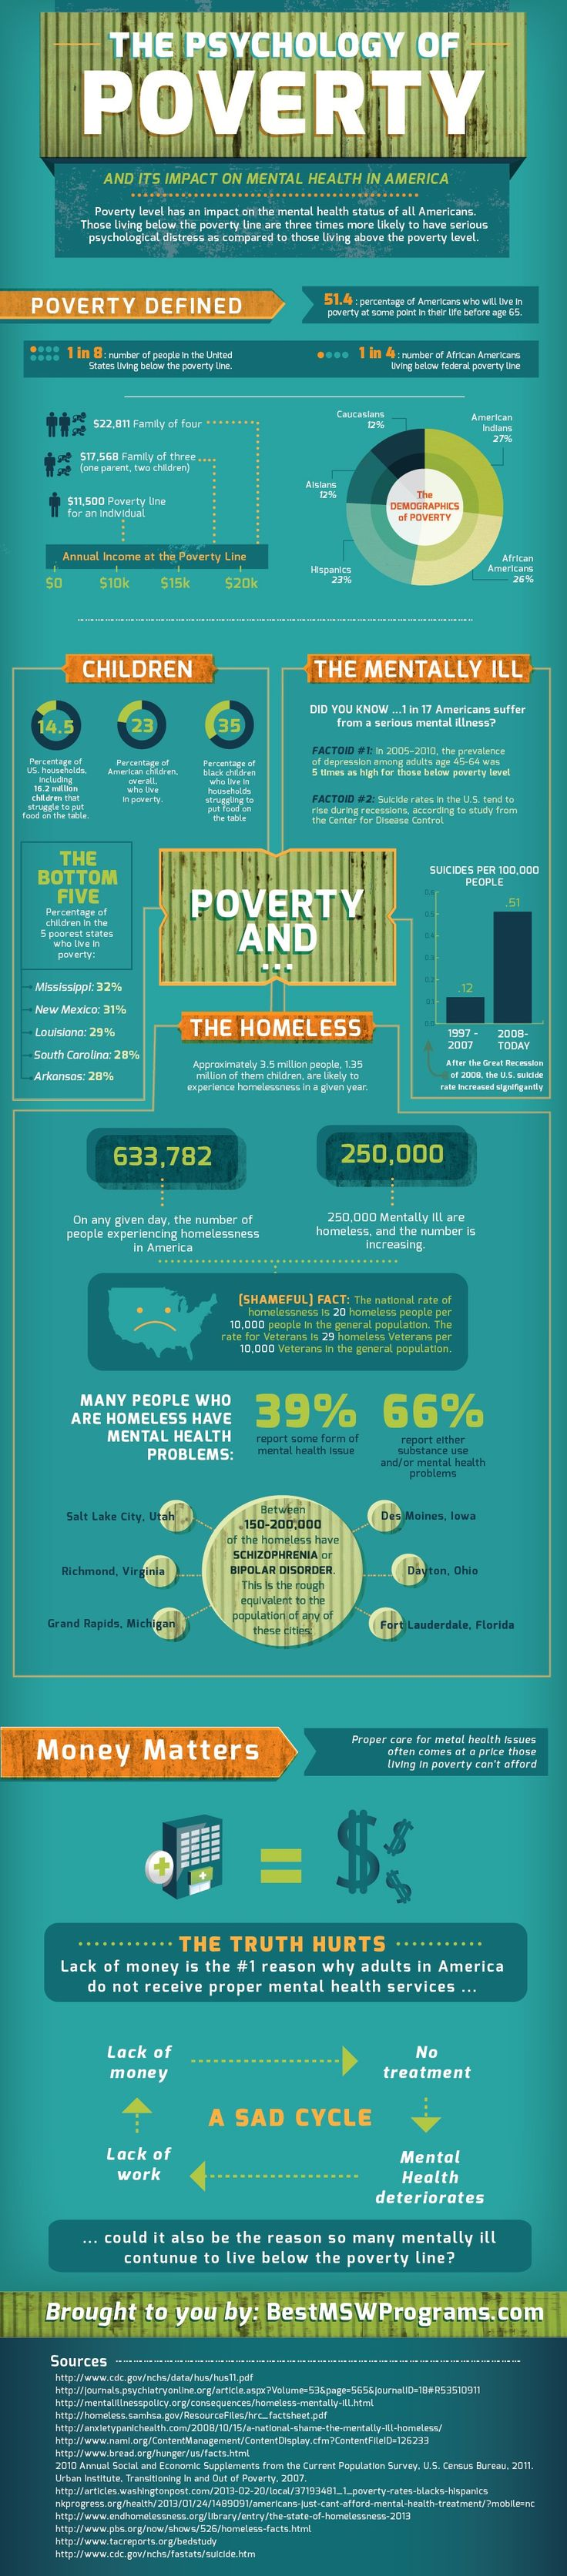 The Psychology of Poverty And Its Impact On Mental Health.